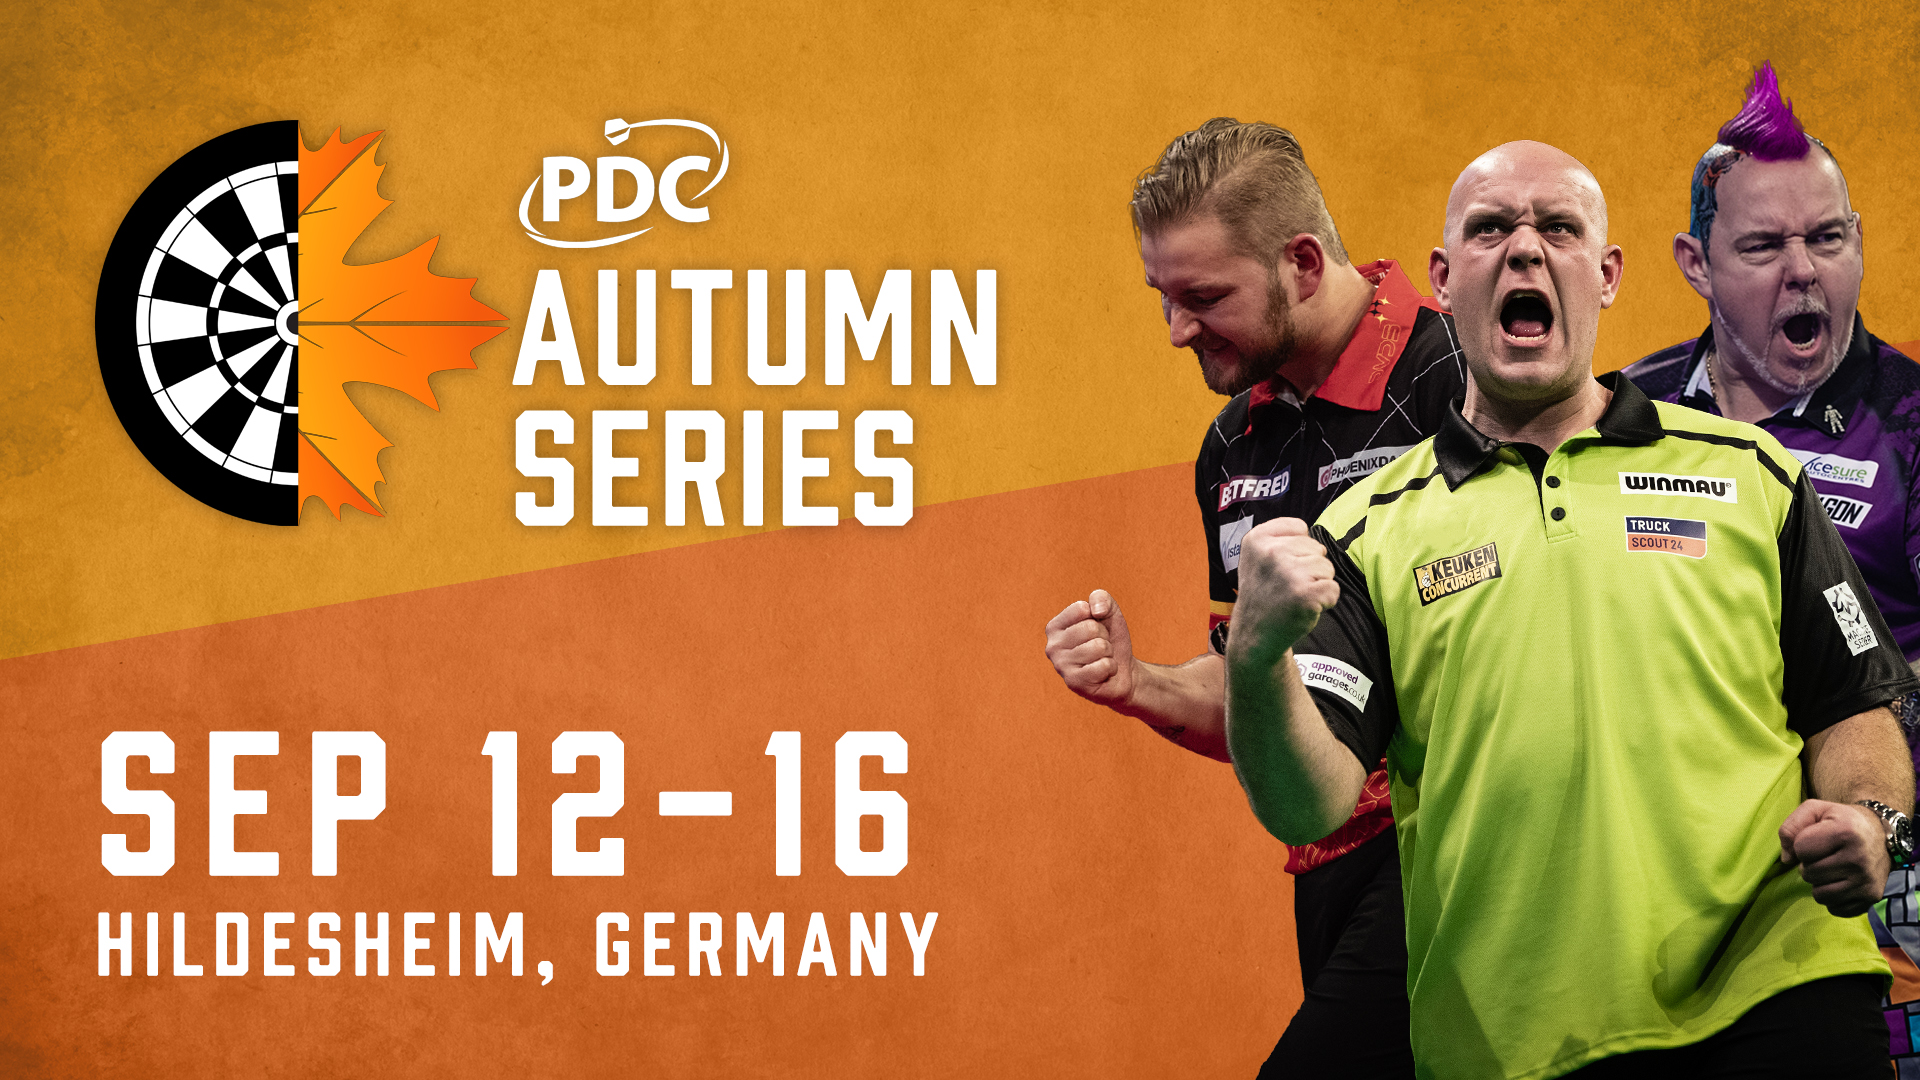 Autumn Series to be staged in September